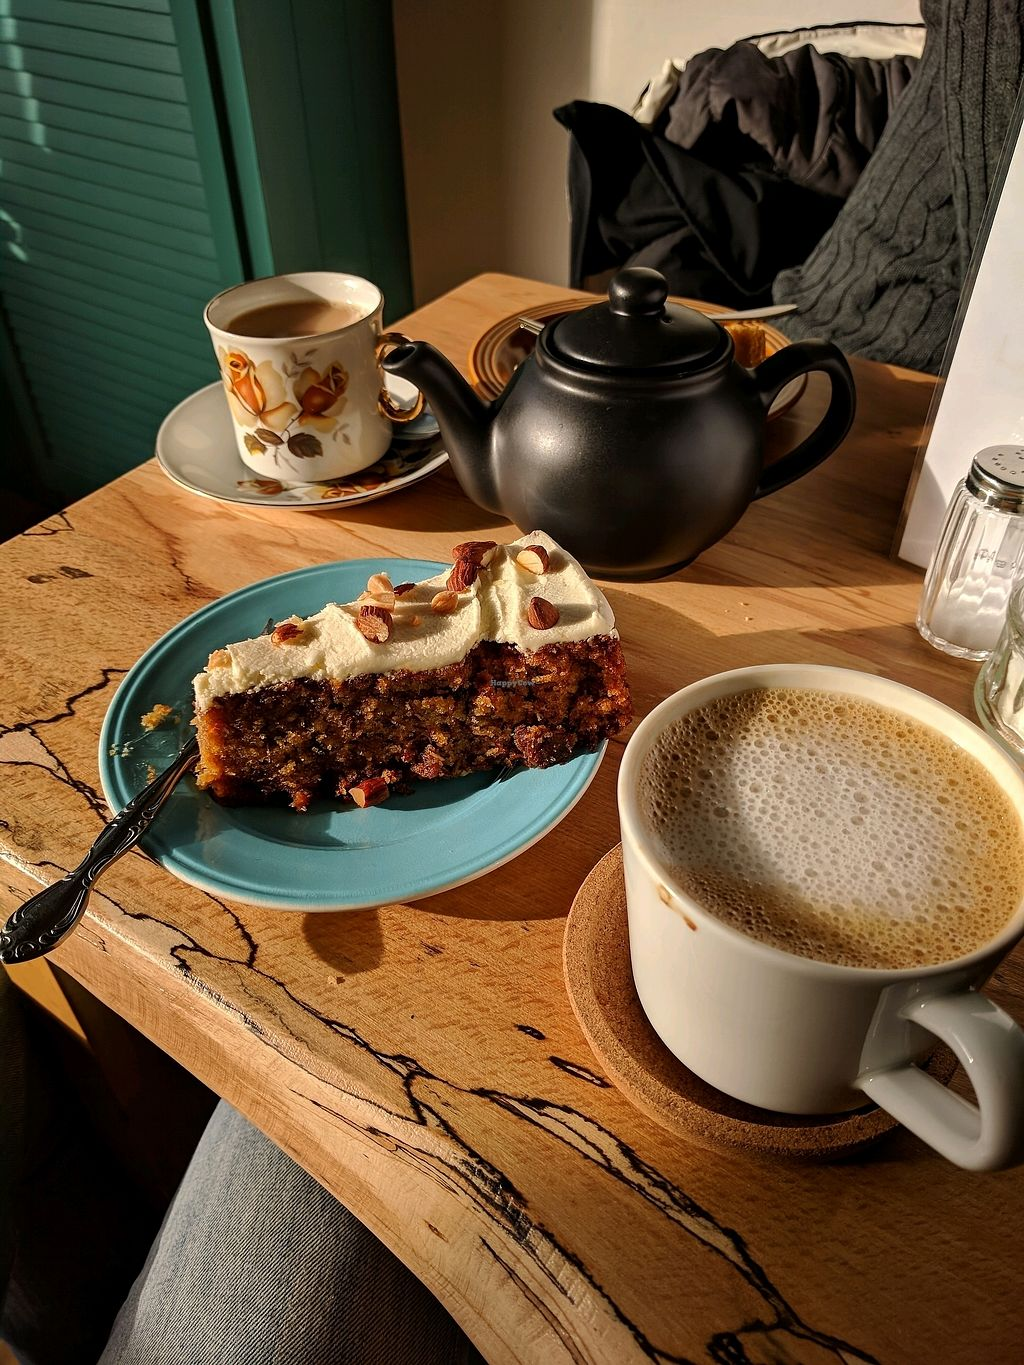 """Photo of Shoe Tree Cafe  by <a href=""""/members/profile/ThomasCooper"""">ThomasCooper</a> <br/>Carrot cake and an almond latte  <br/> November 12, 2017  - <a href='/contact/abuse/image/102296/324719'>Report</a>"""